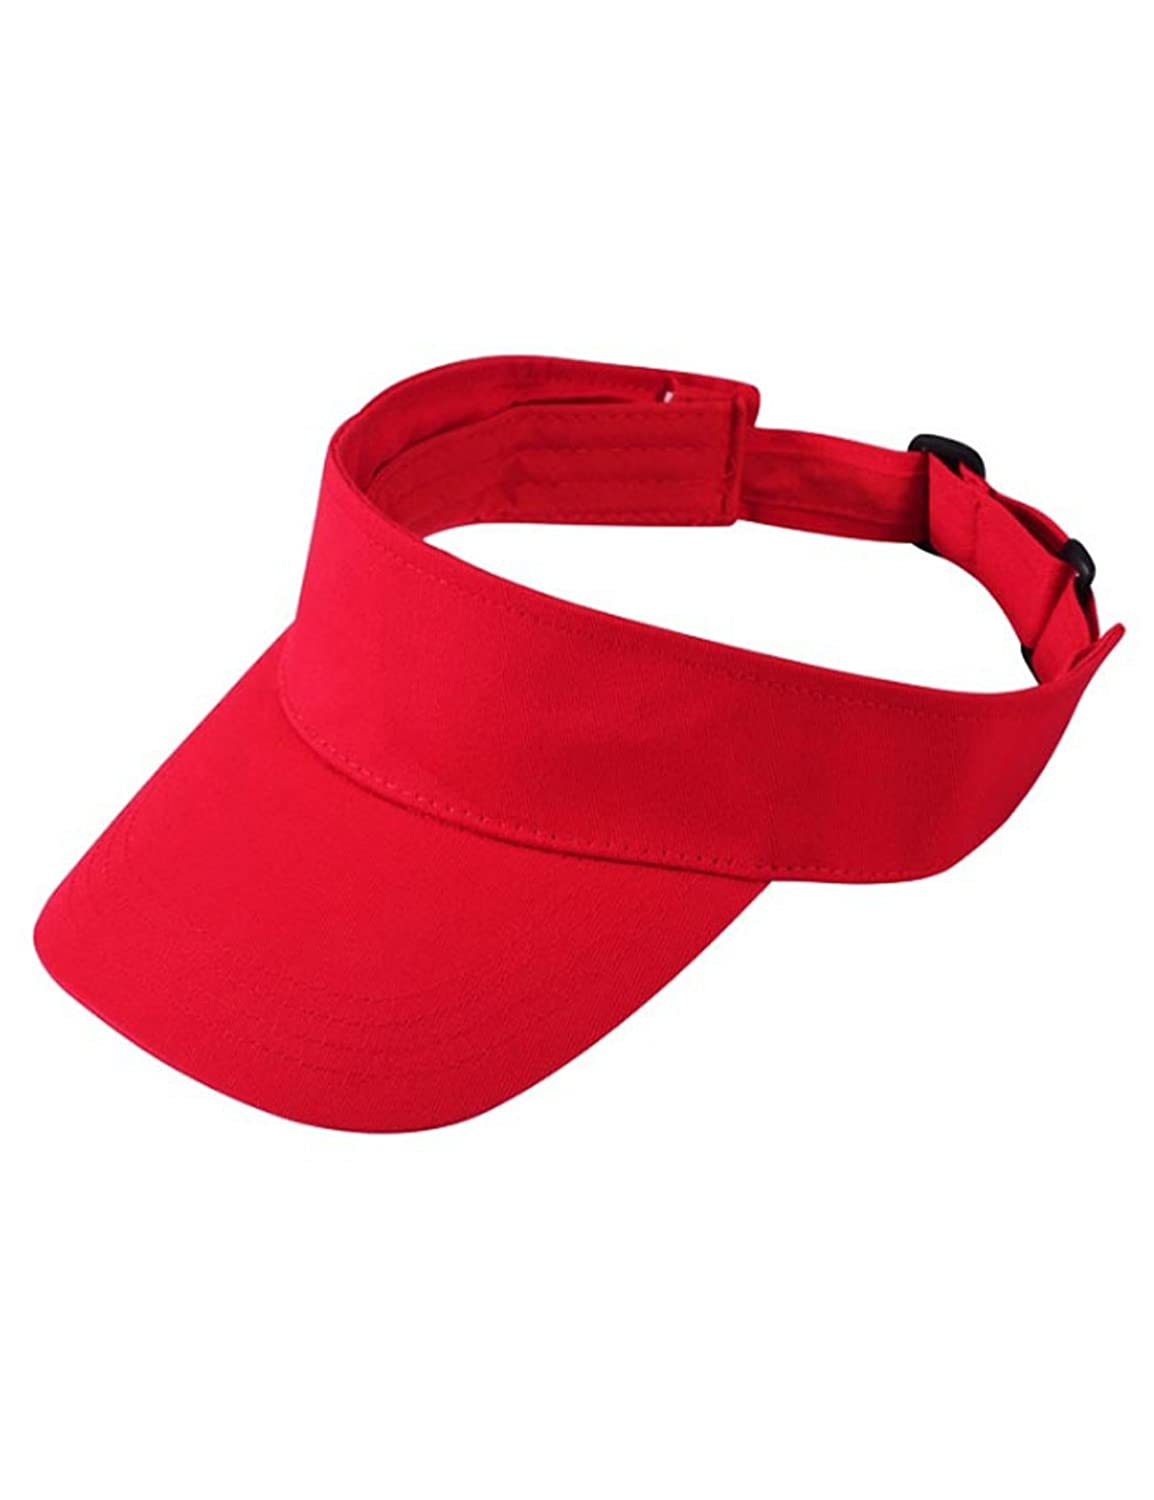 Bestgift Womens Mens Solid Colour Cotton Fashion Sports Hat Ajustable Sun Visors BSGFWJ0269-1F